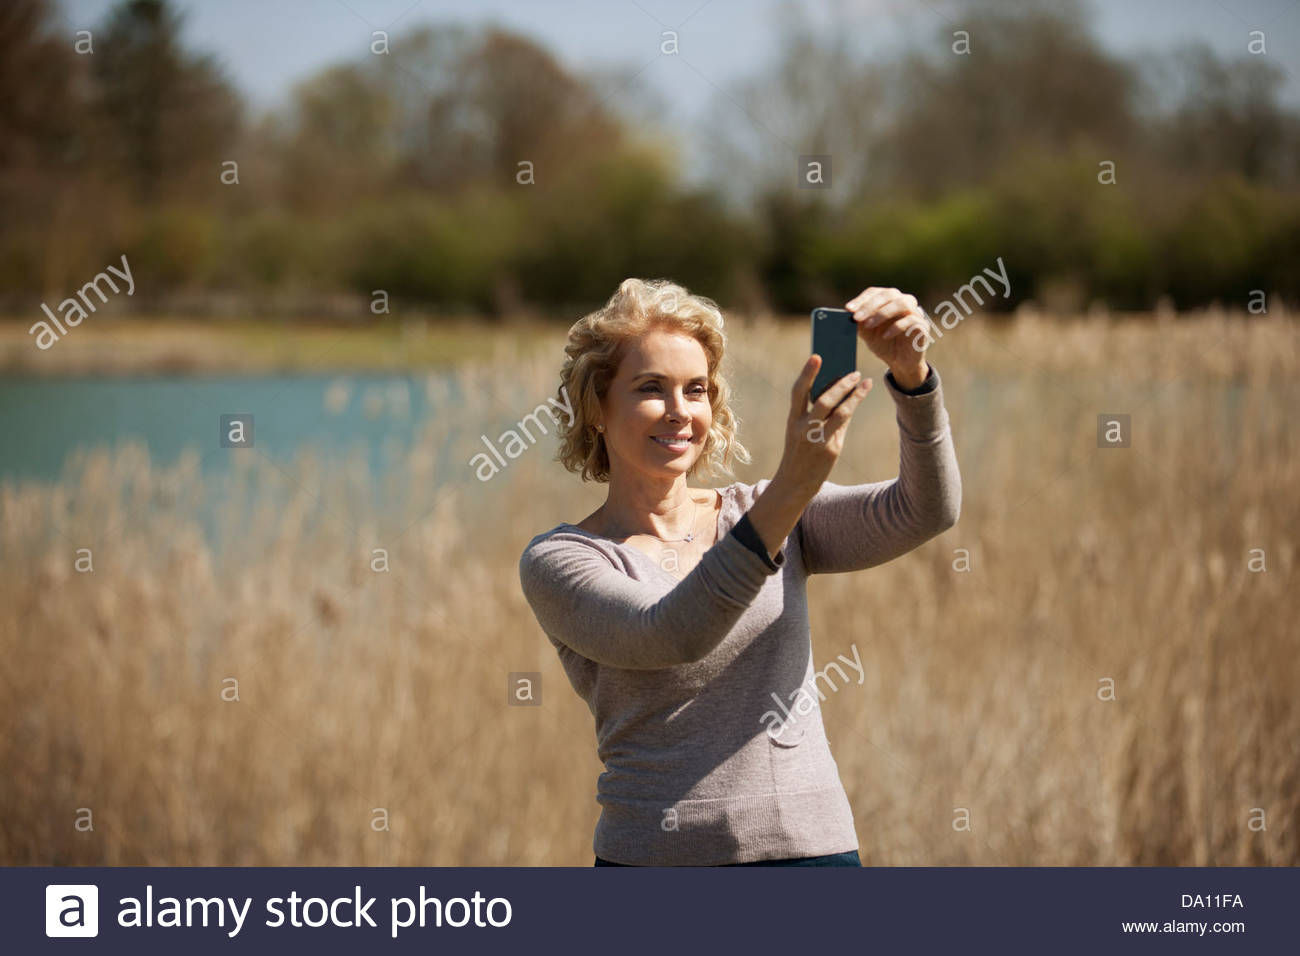 A mature woman in the countryside, taking a photo with a smartphone - Stock Image